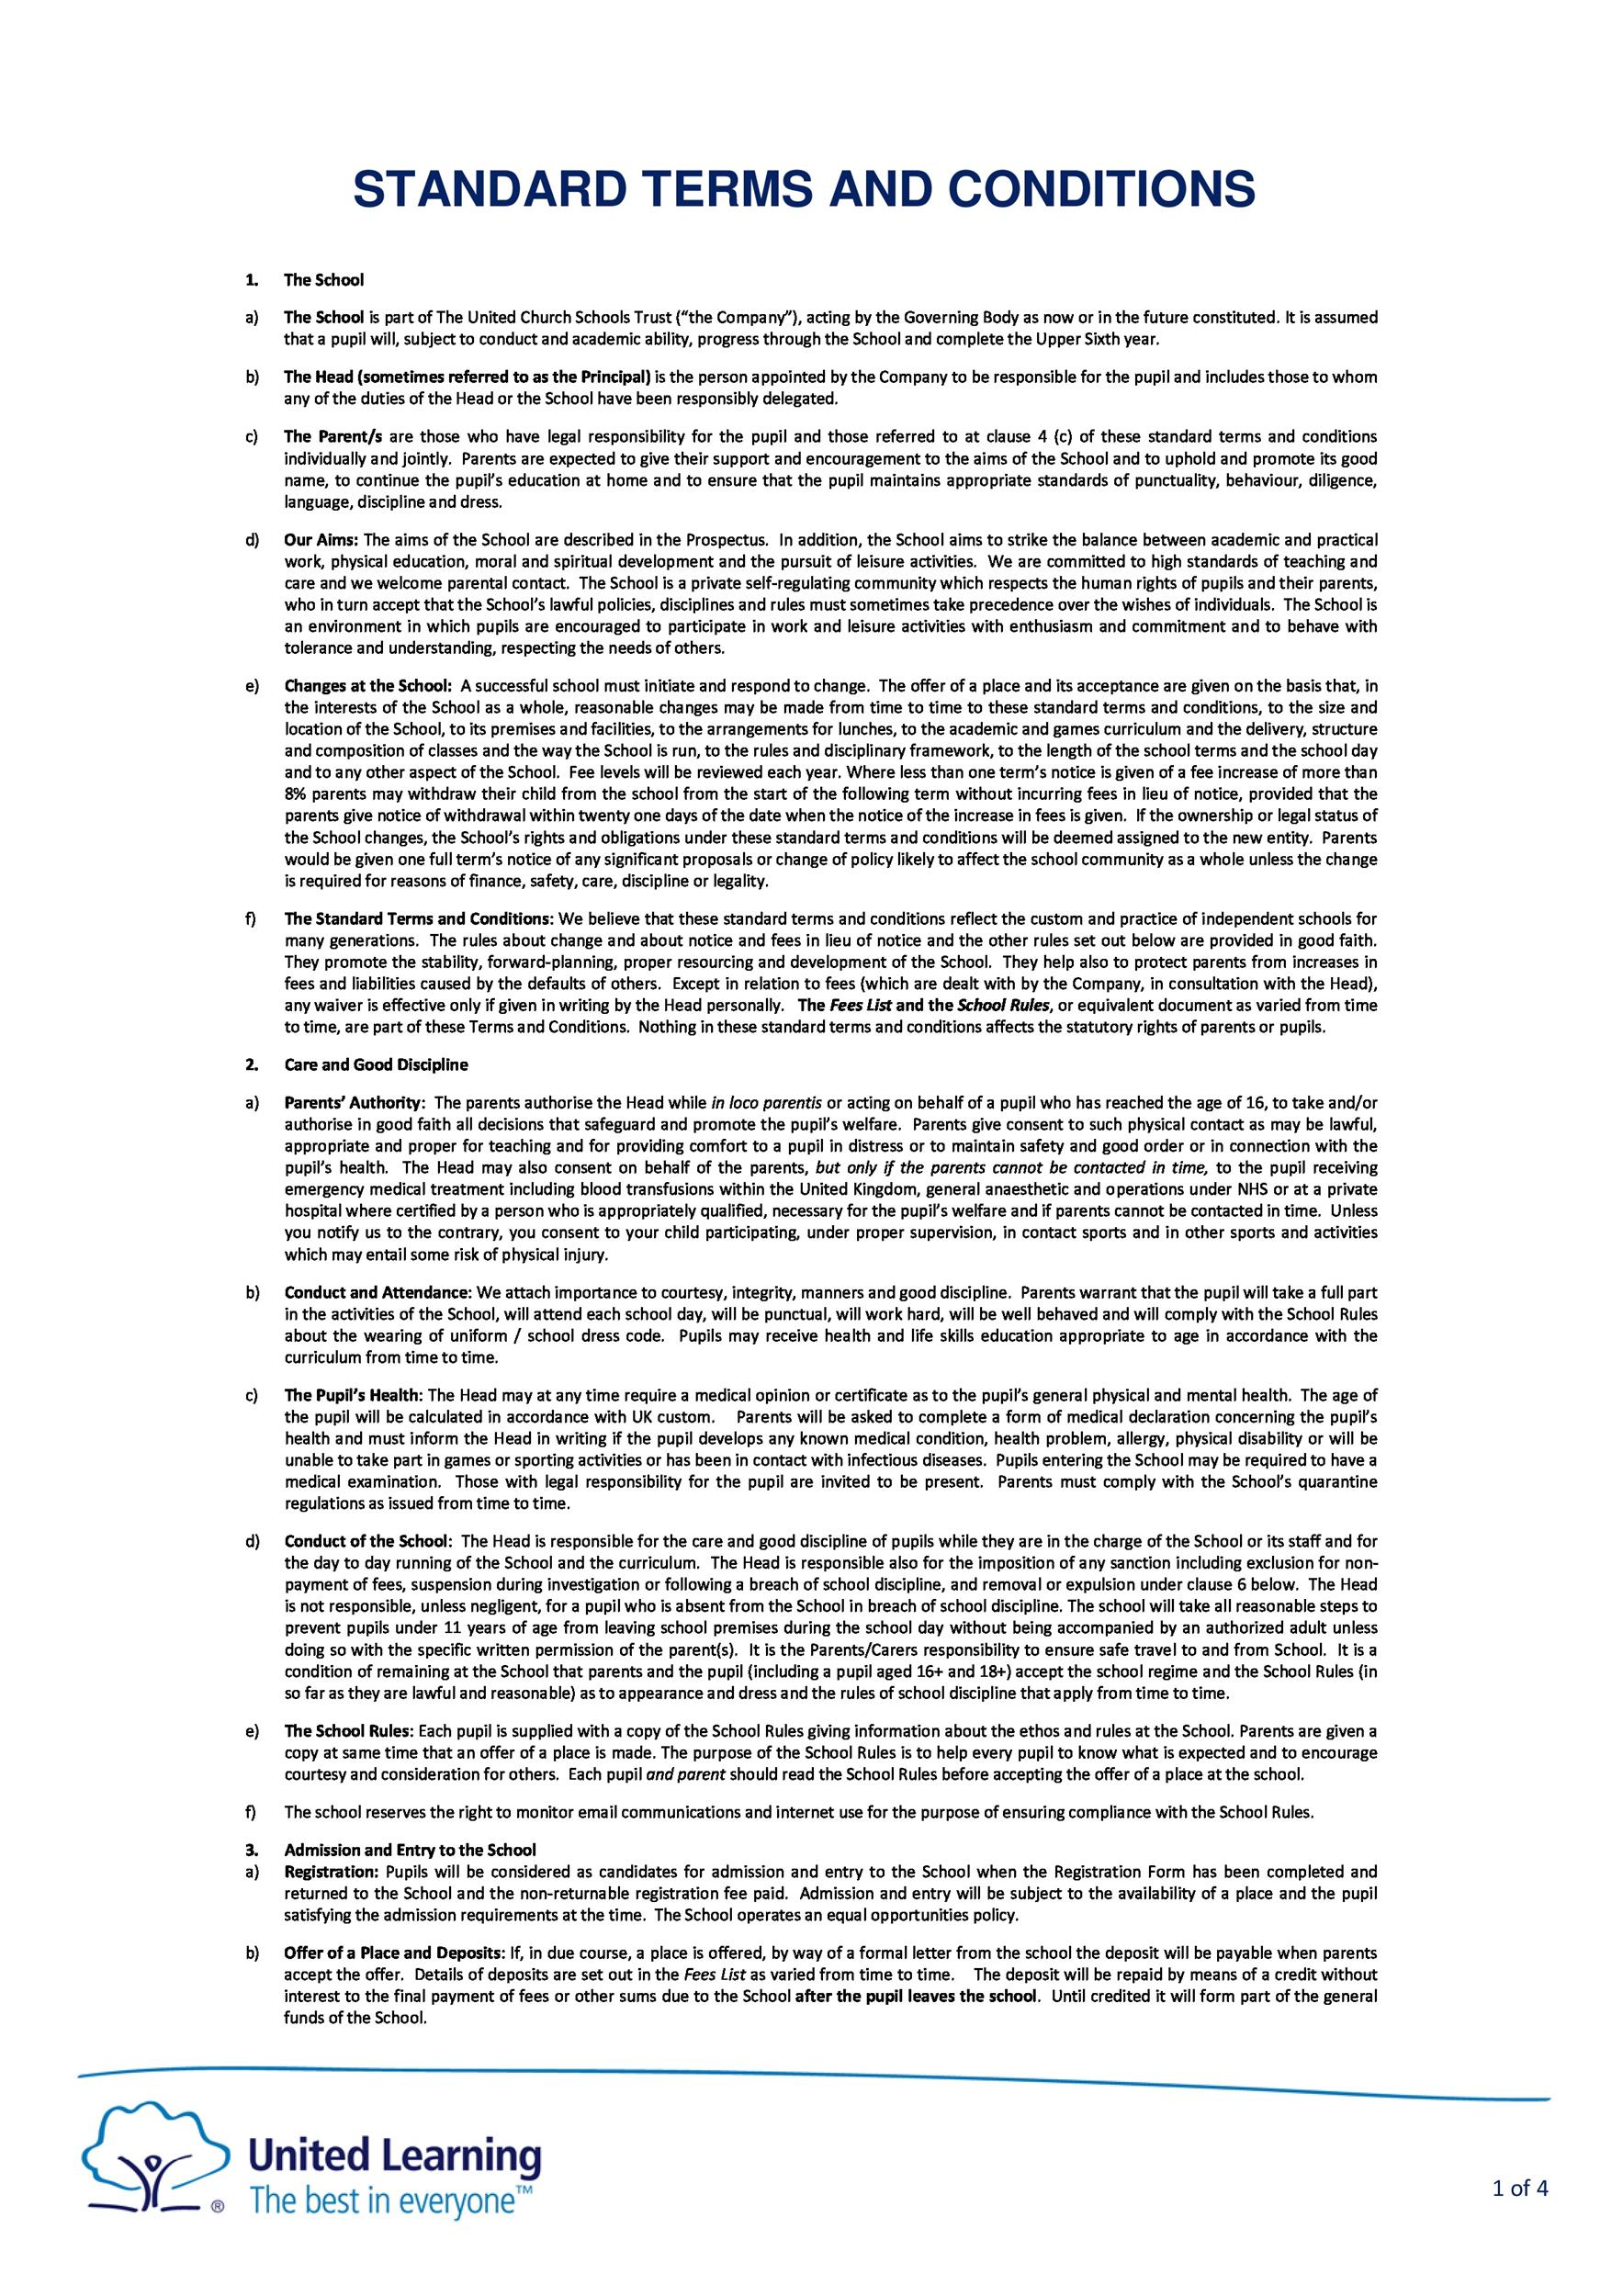 Free terms and conditions template 22